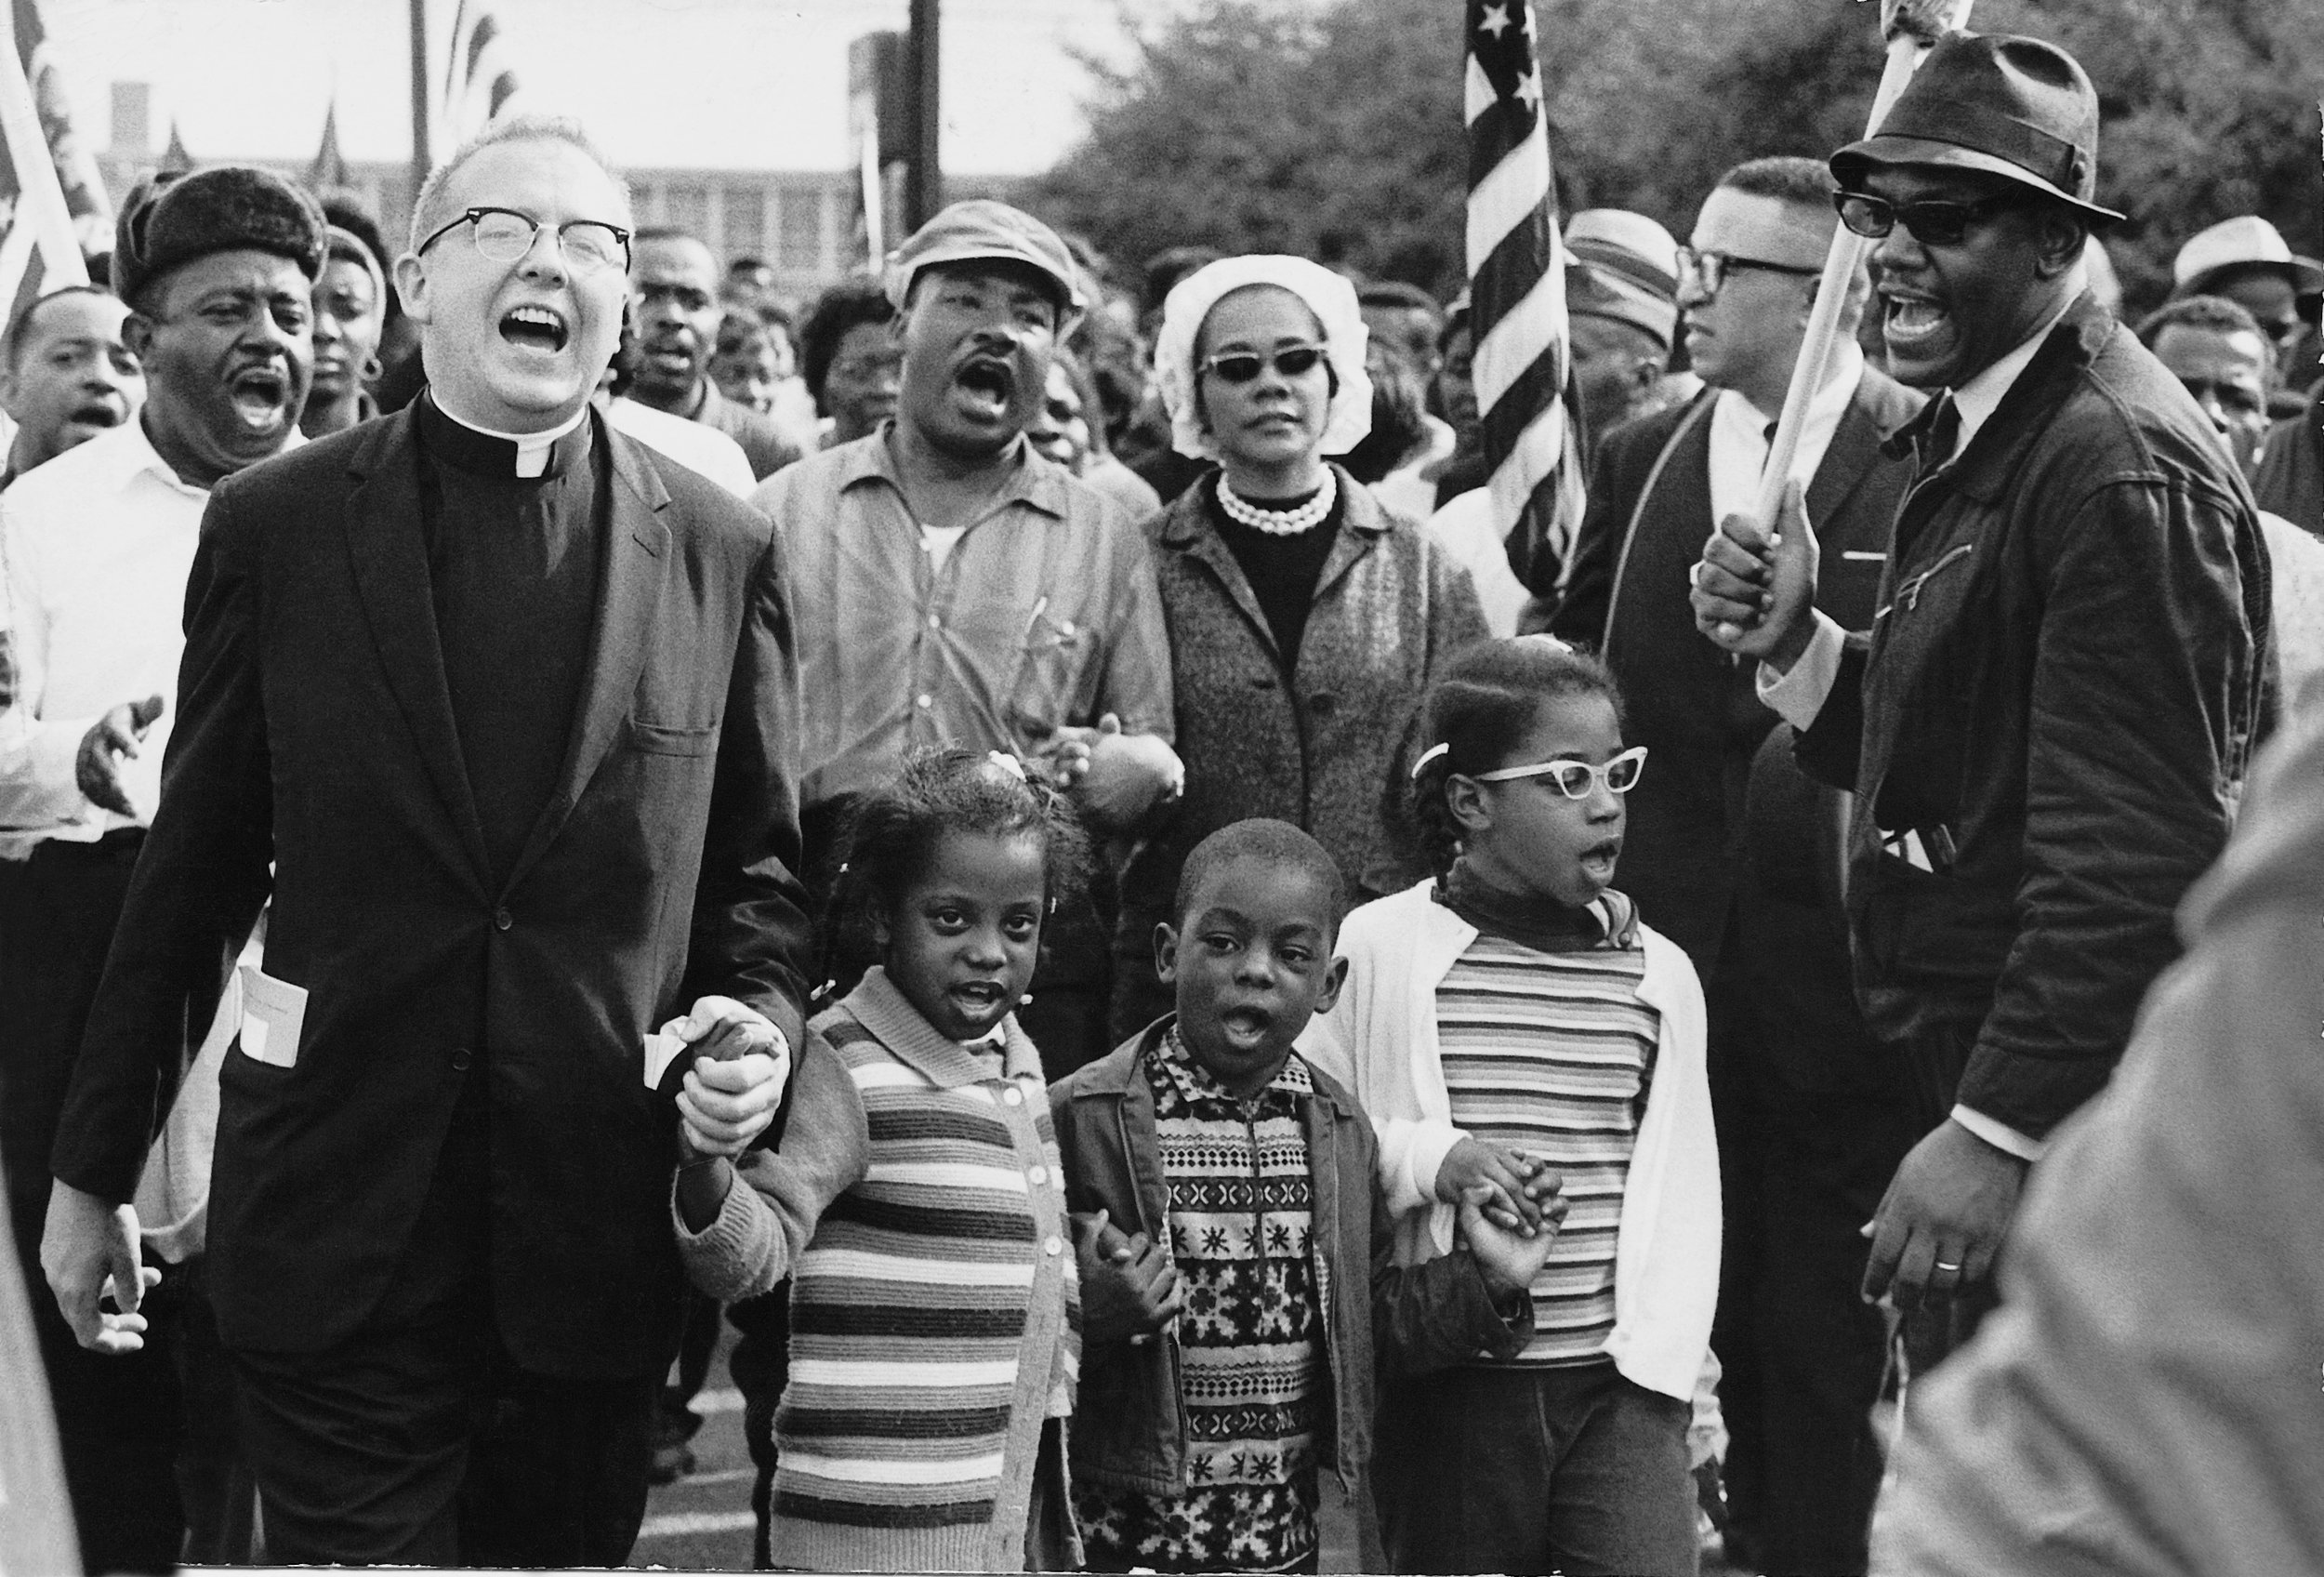 Abernathy_Children_on_front_line_leading_the_SELMA_TO_MONTGOMERY_MARCH_for_the_RIGHT_TO_VOTE.jpg